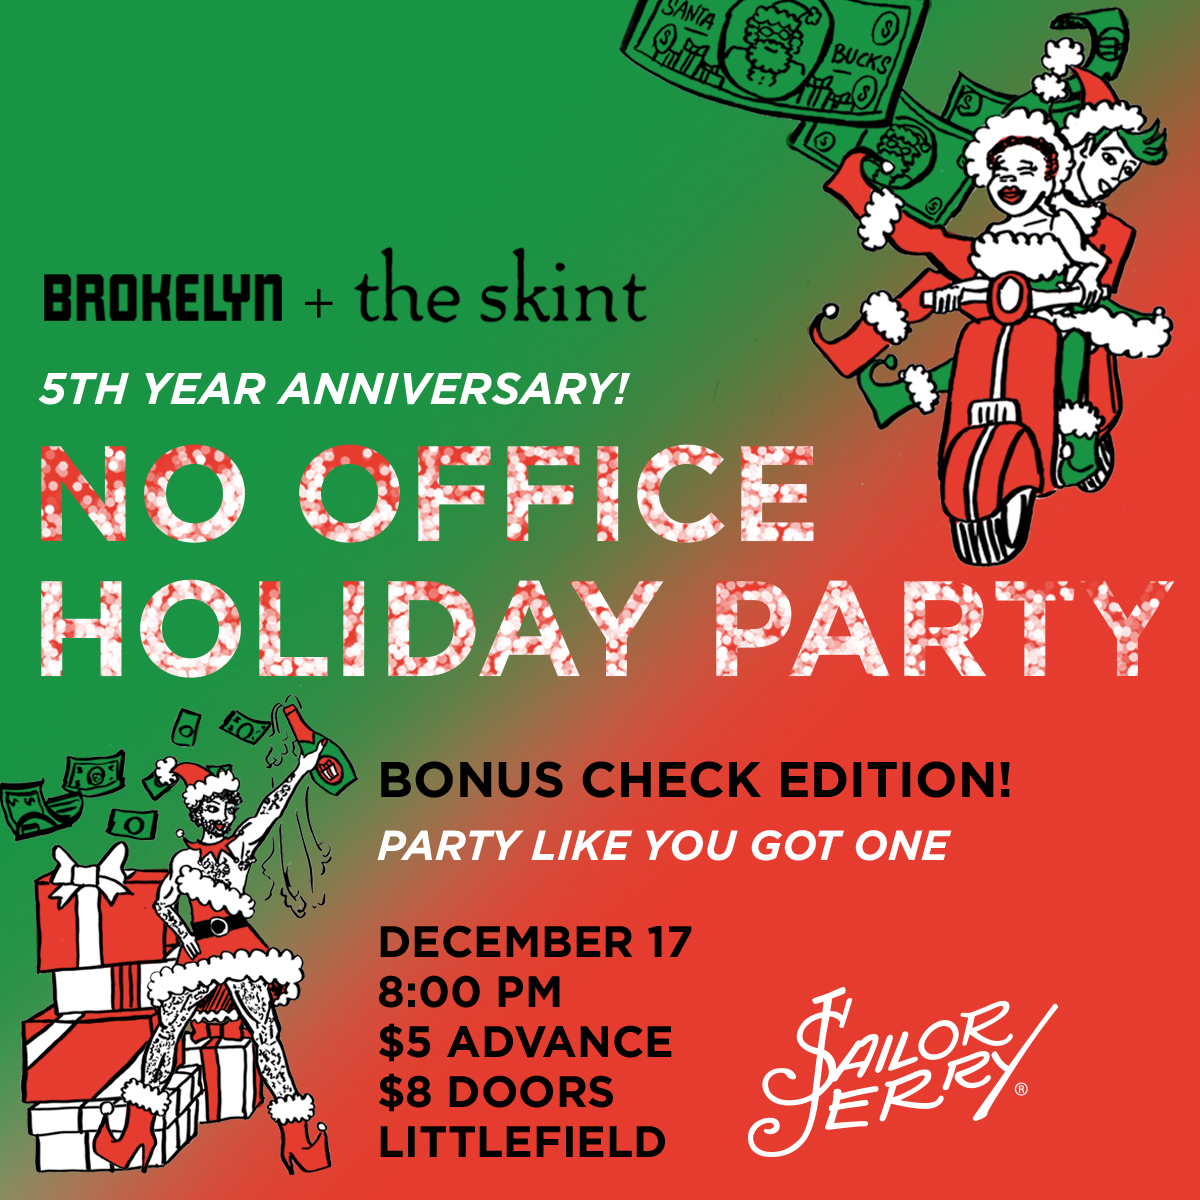 Save The Date The No Office Holiday Party Is On Thursday Brokelyn